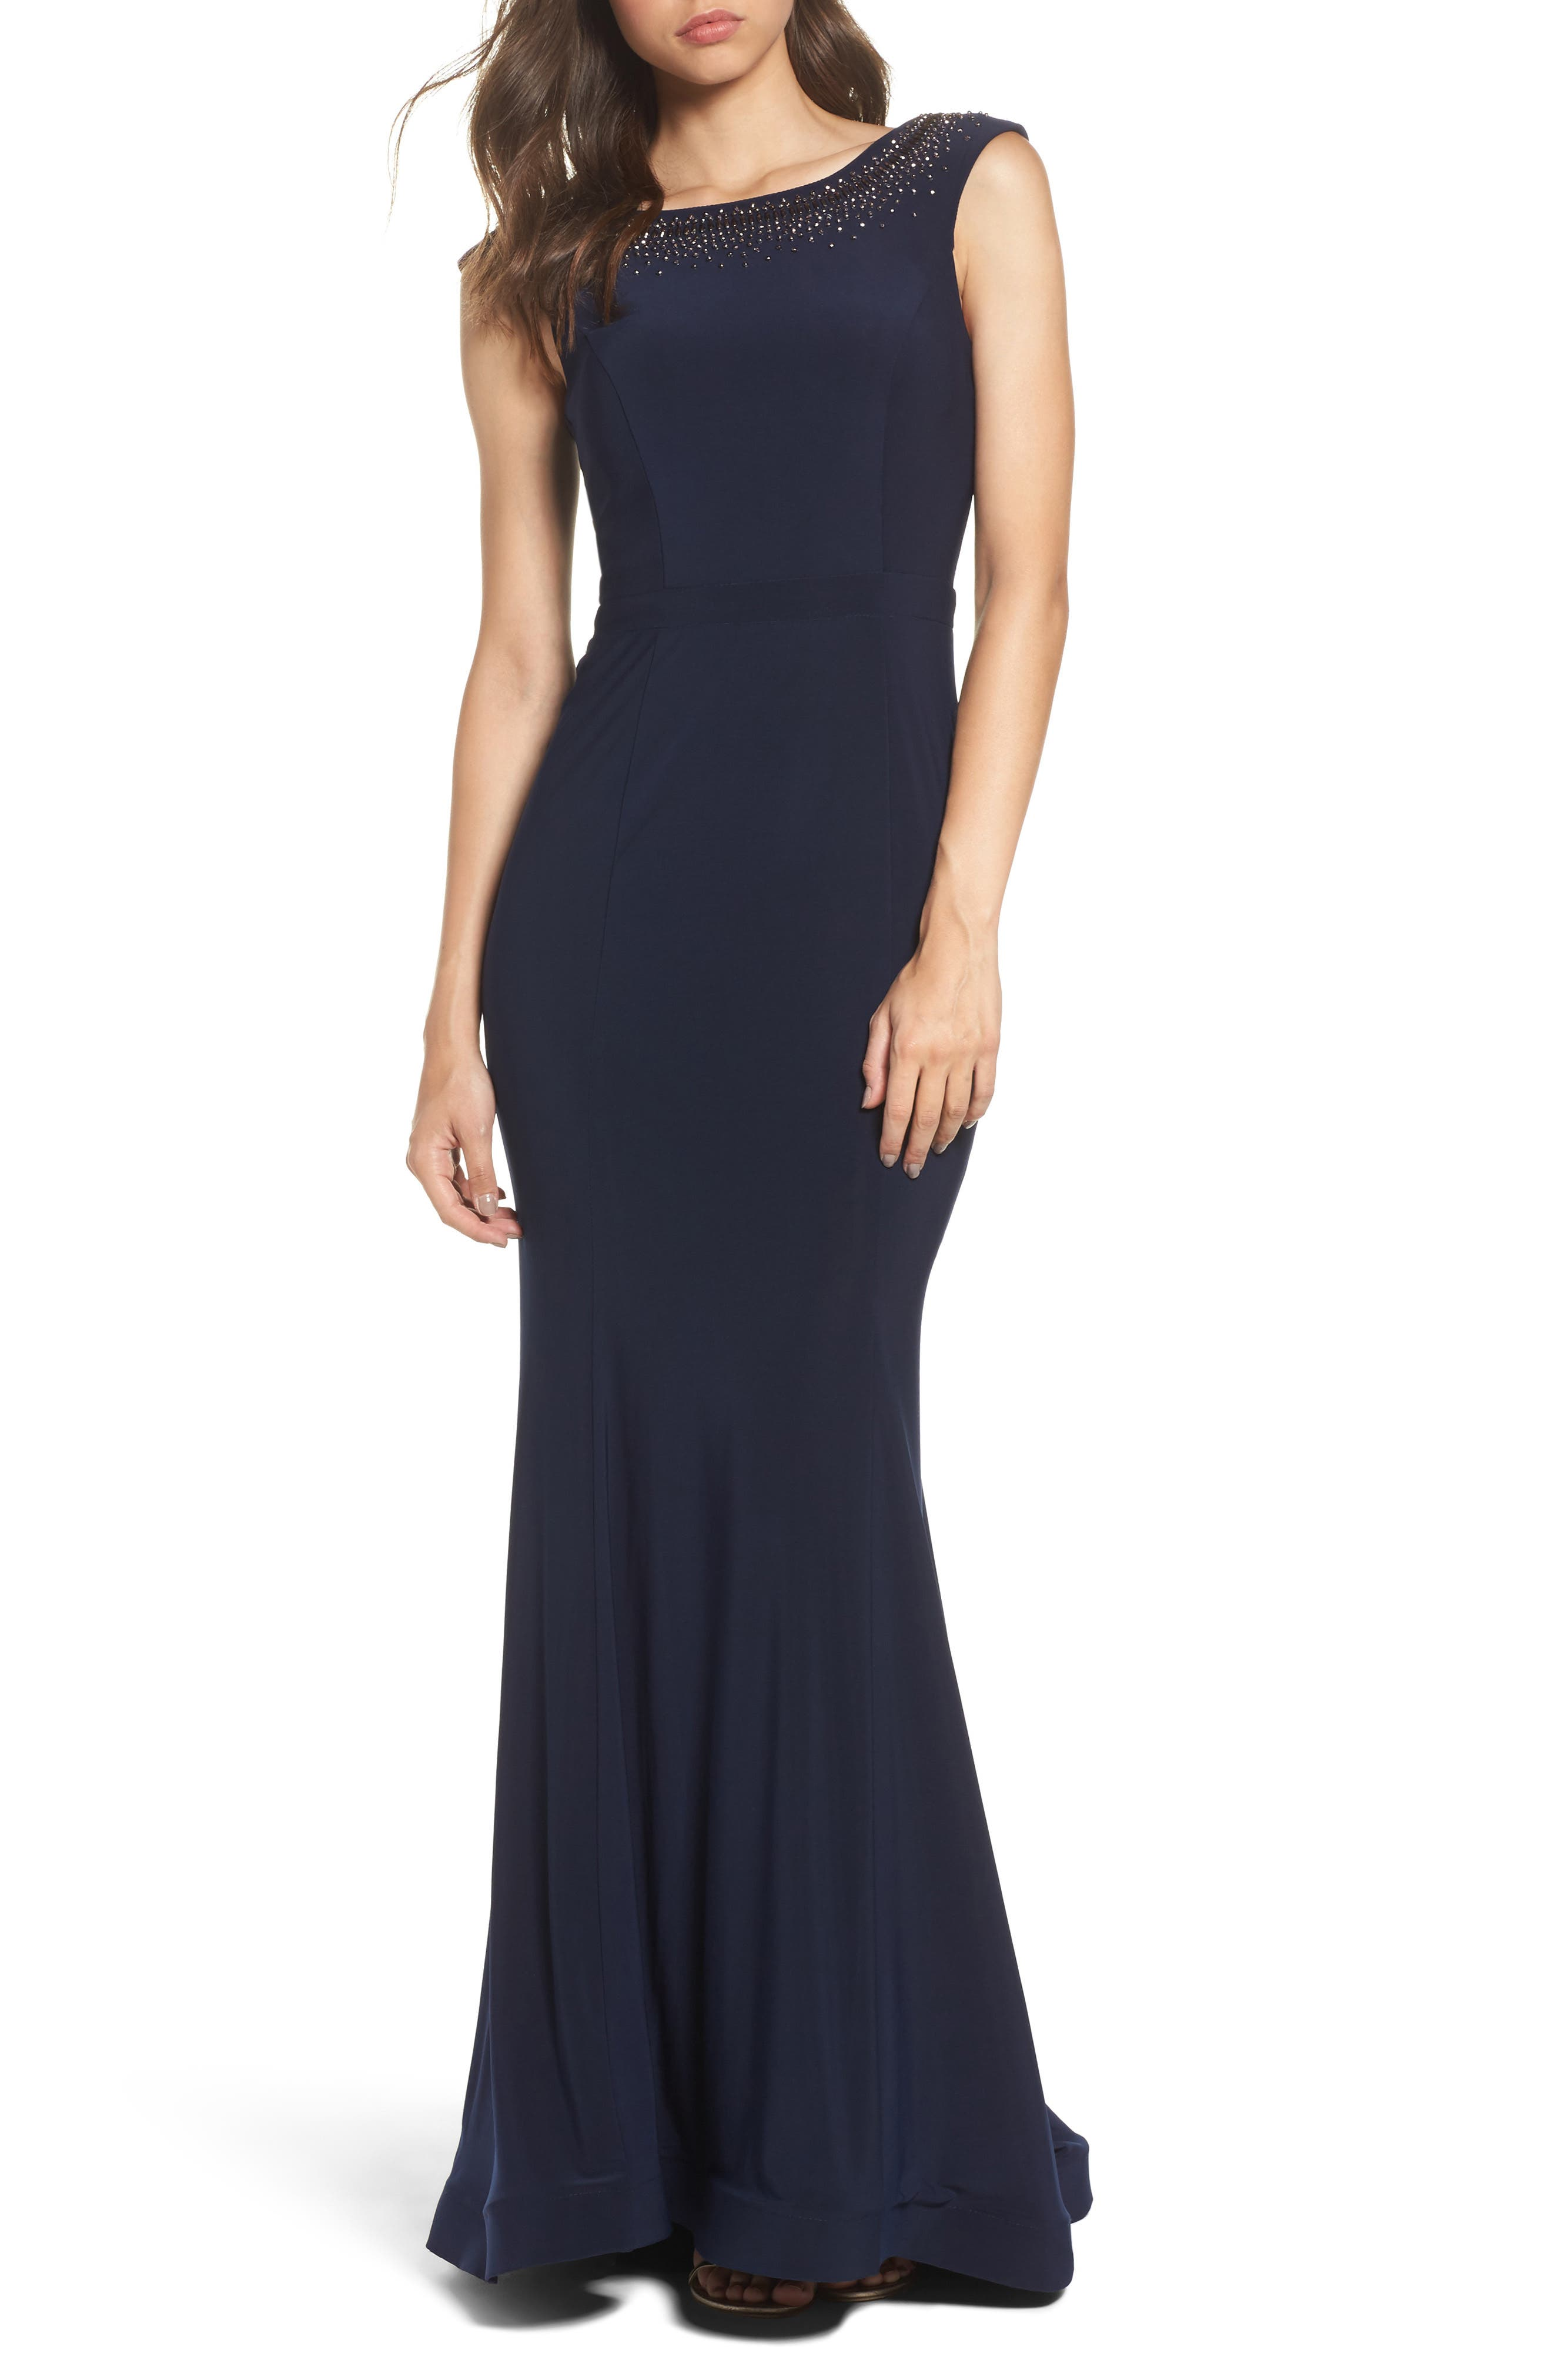 Alternate Image 1 Selected - Xscape Beaded Ruffle Back Jersey Trumpet Gown (Regular & Petite)